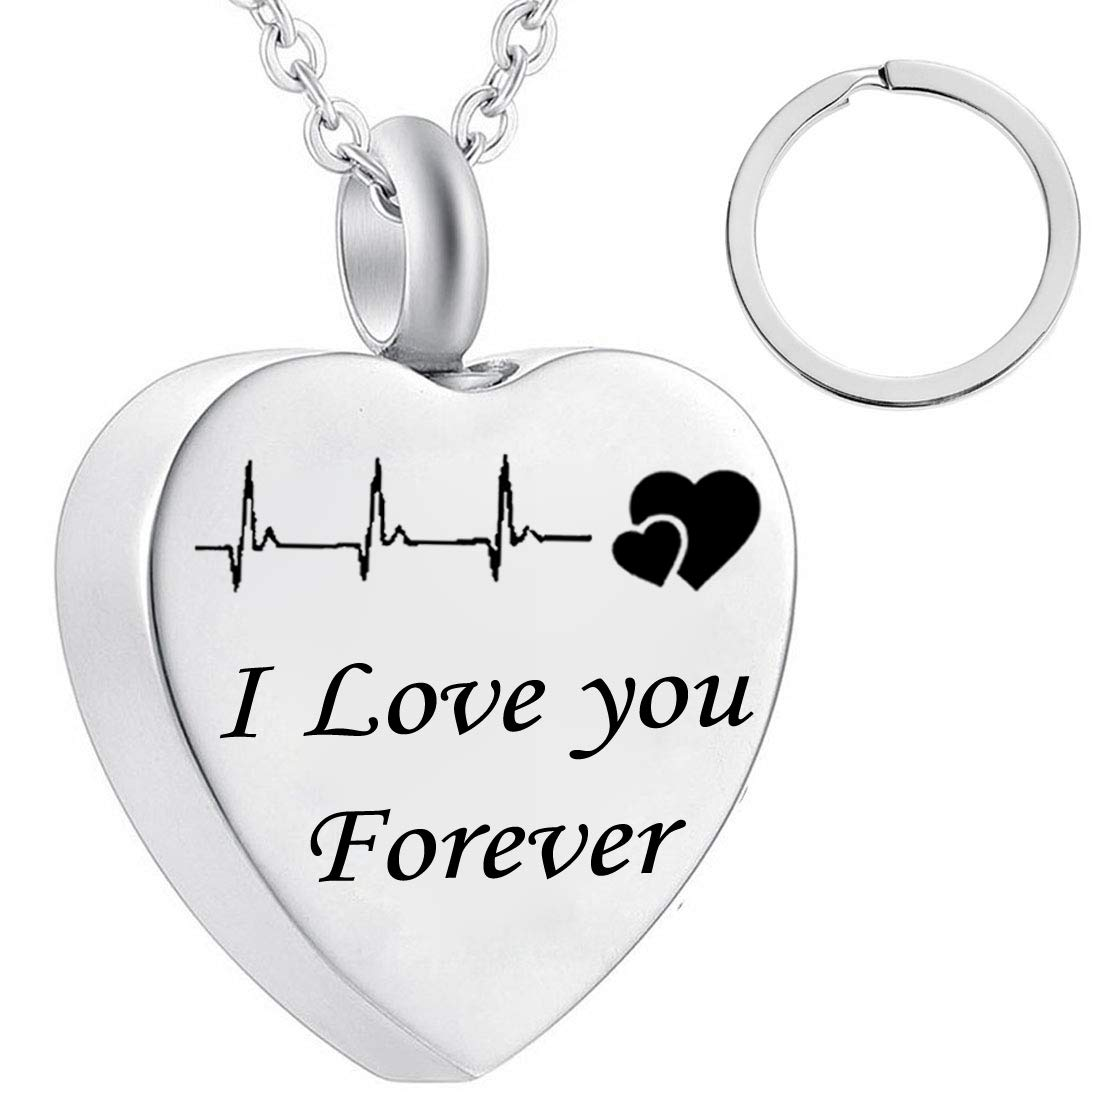 misyou dad and mom Cremation Jewelry Cardiogram Necklace Silver Always in My Heart Memorial Necklace Ashes Keepsake Pendant